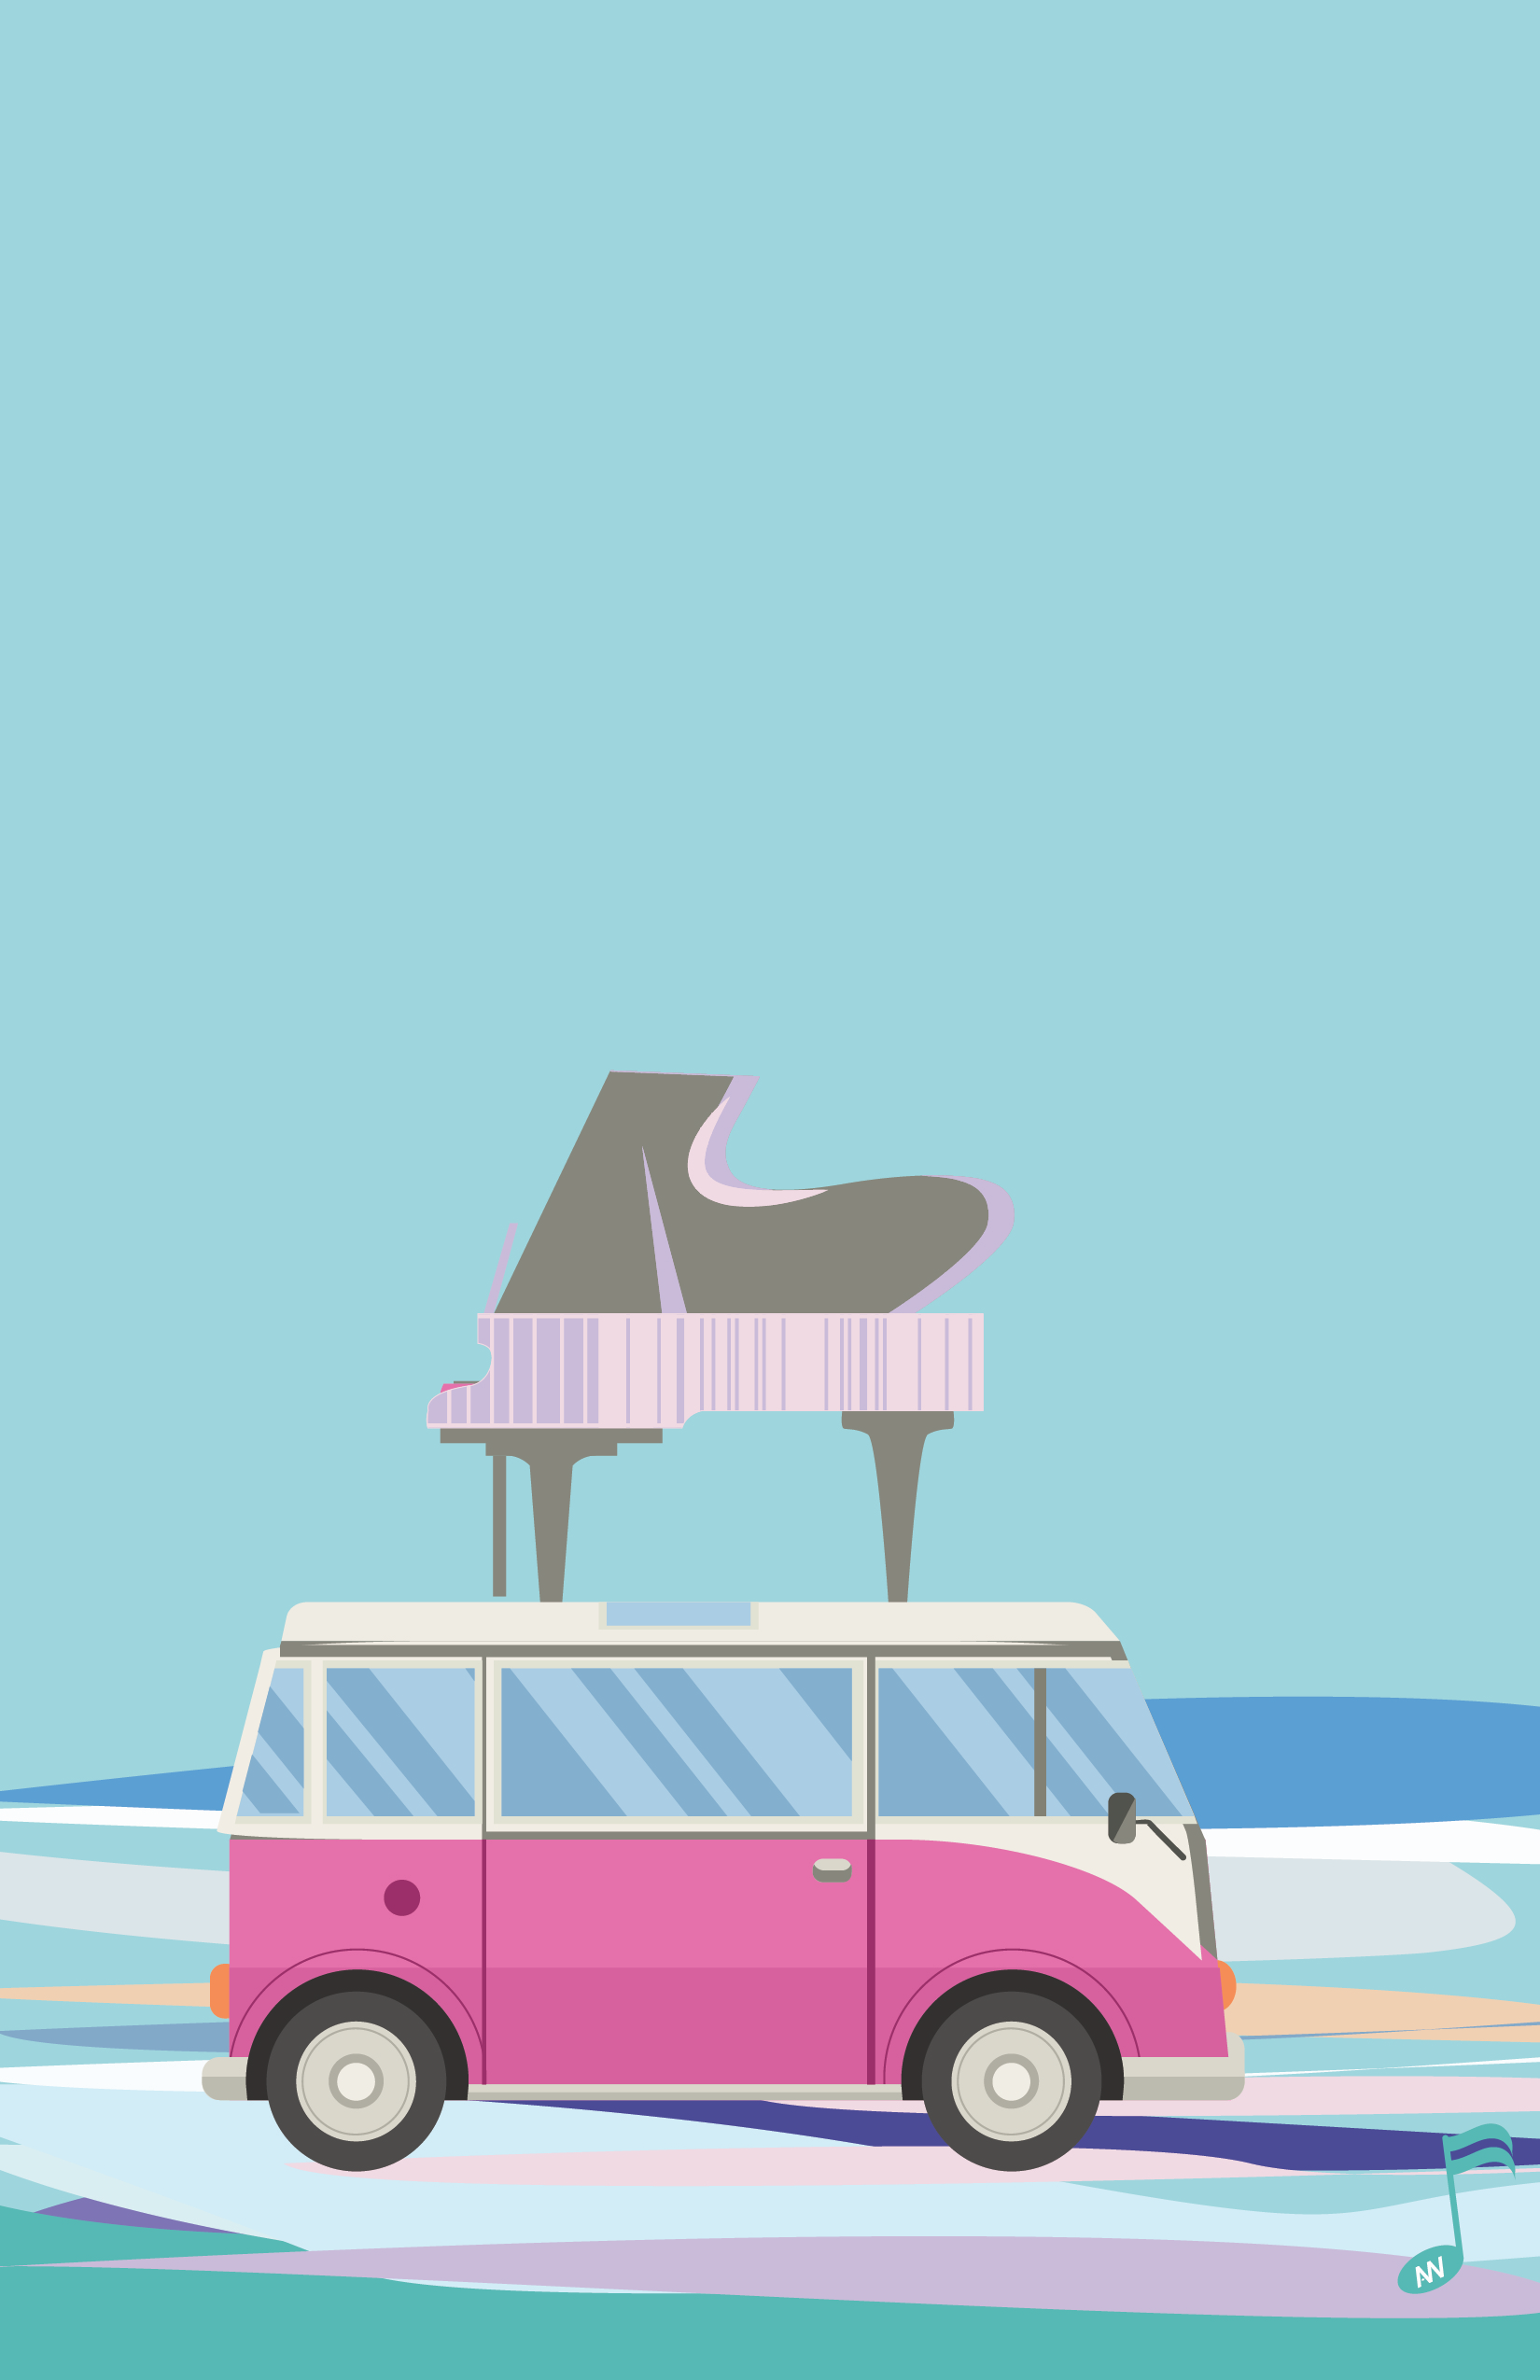 Piano-is-a-journey-01.png